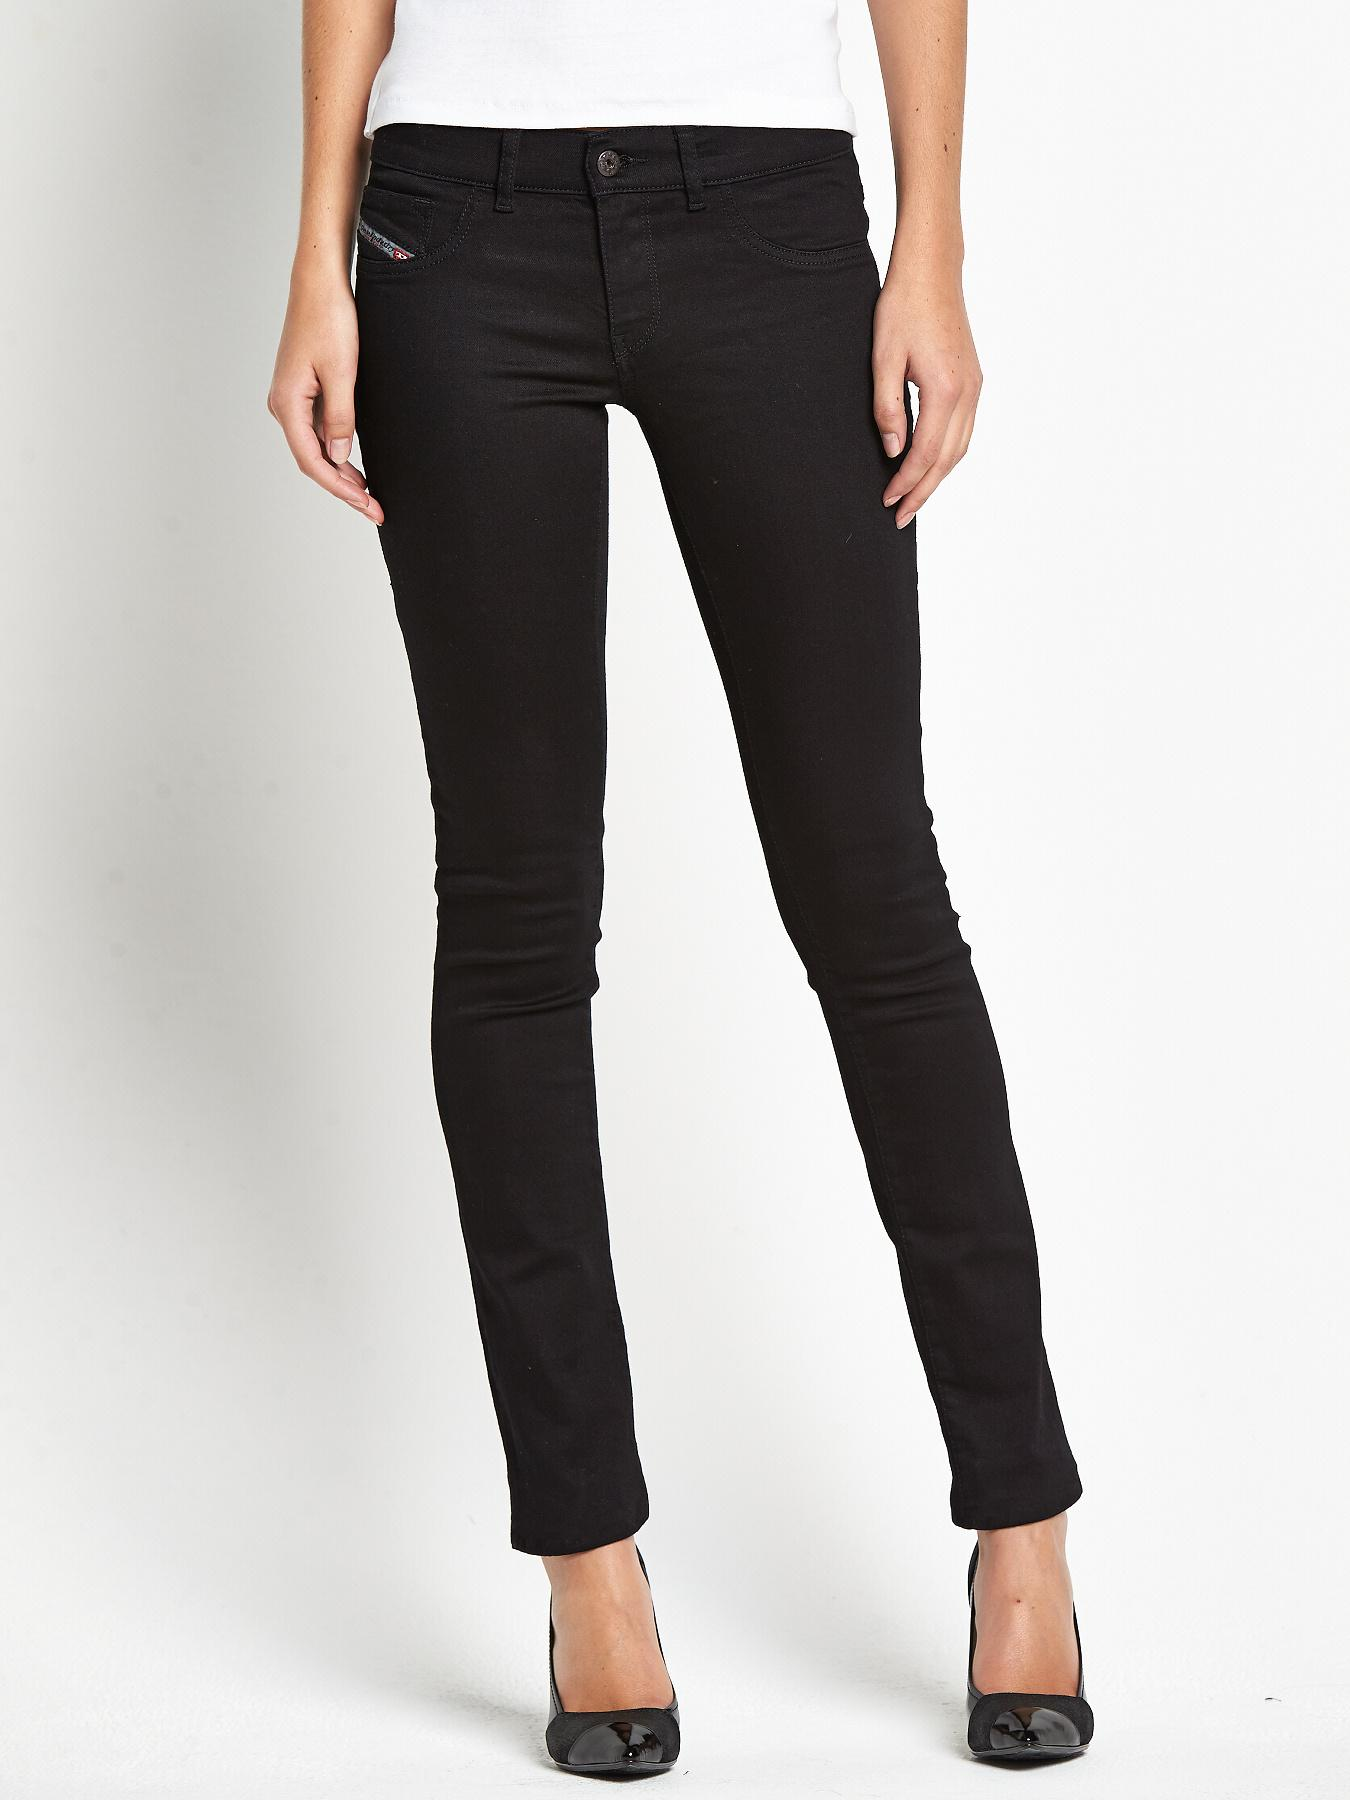 Livier Super Slim Jeggings - Black, Black